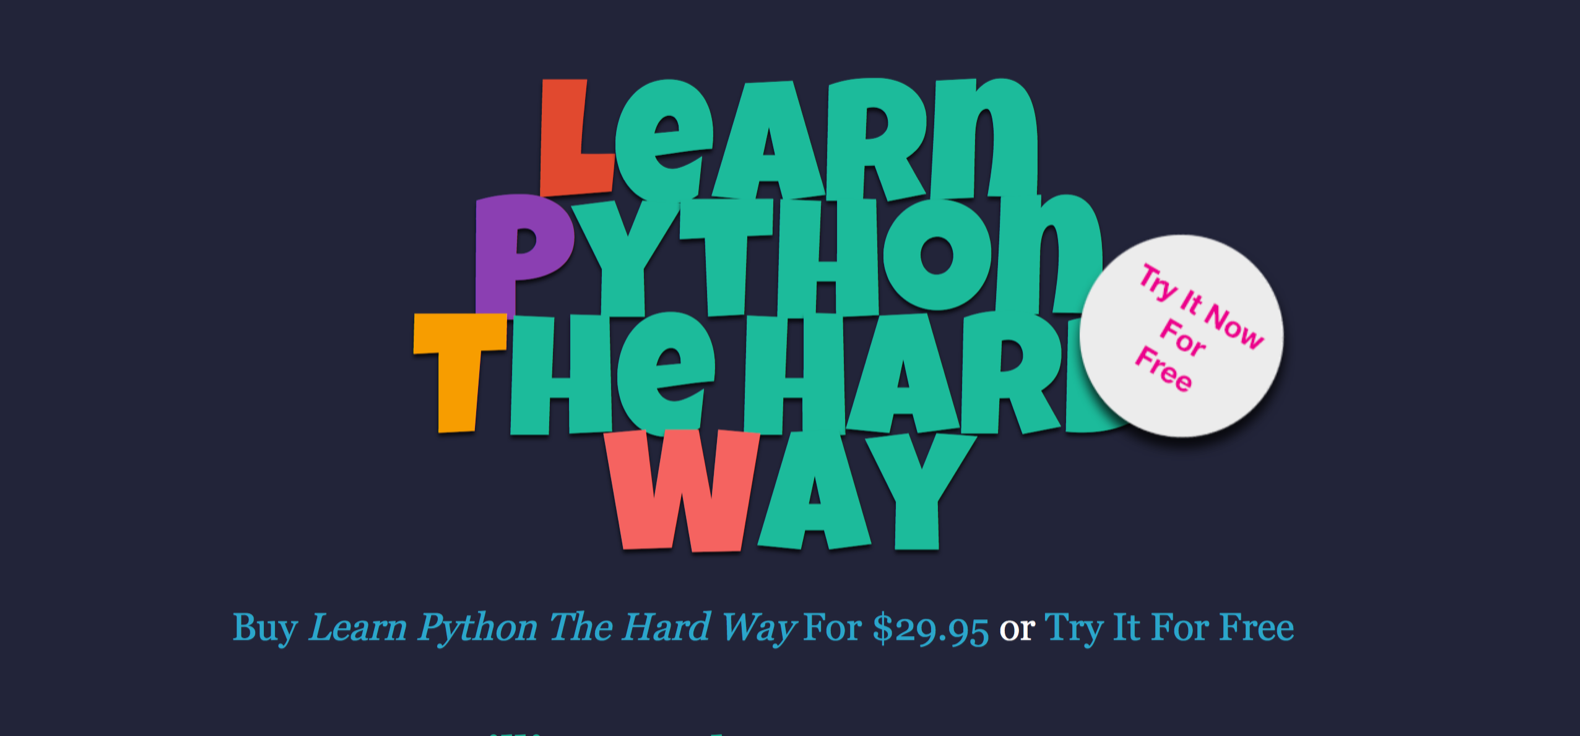 Learn Python The Hard Way(Python3) : learnpython